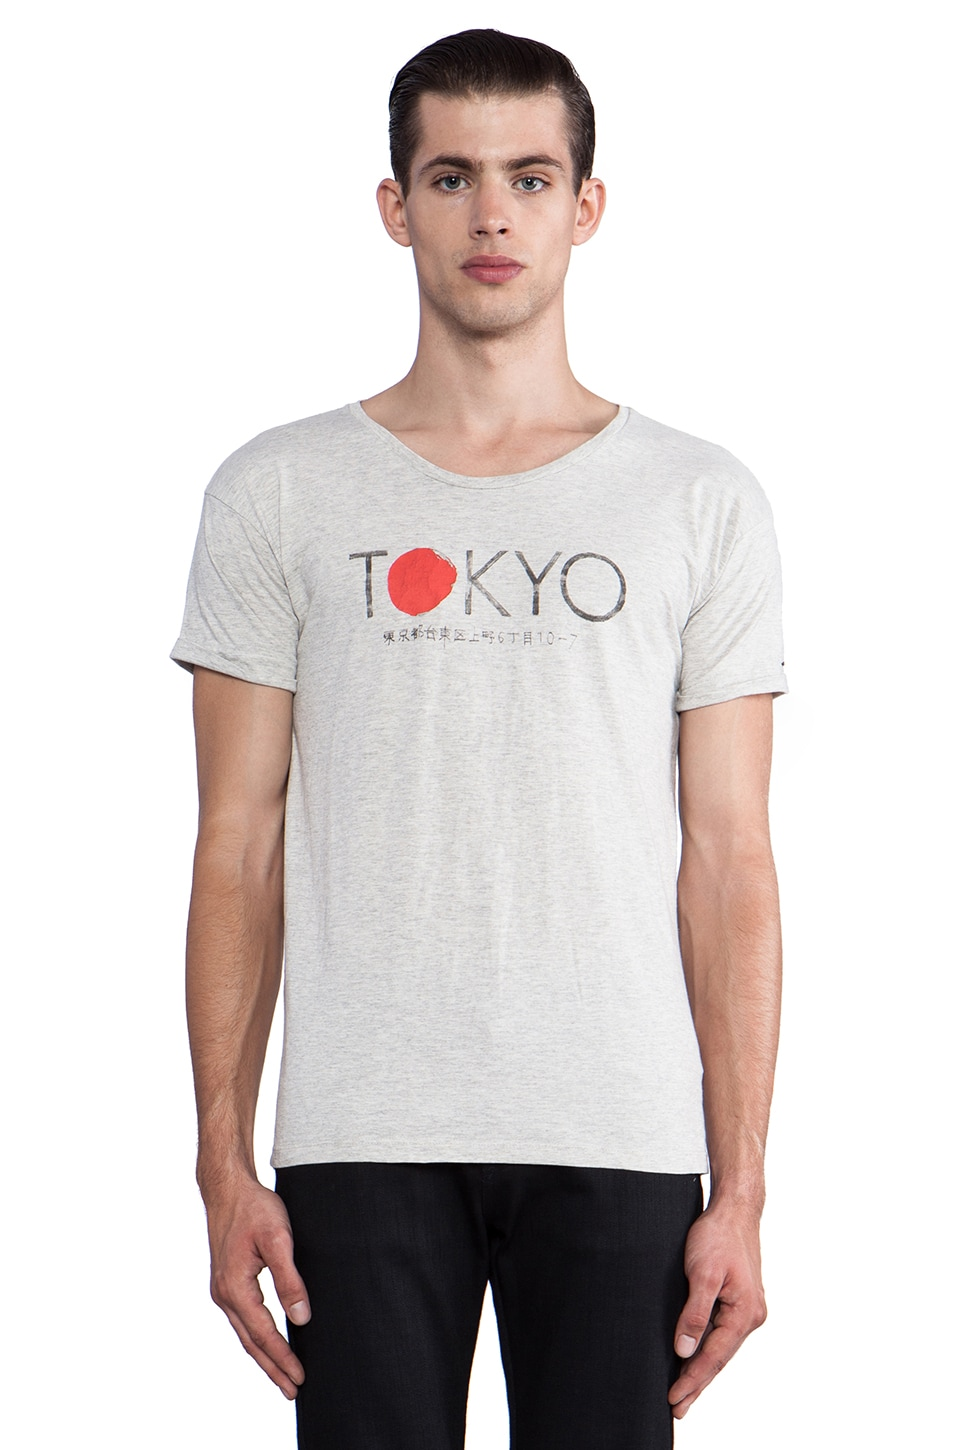 Scotch & Soda Tokyo Tee in Vintage White